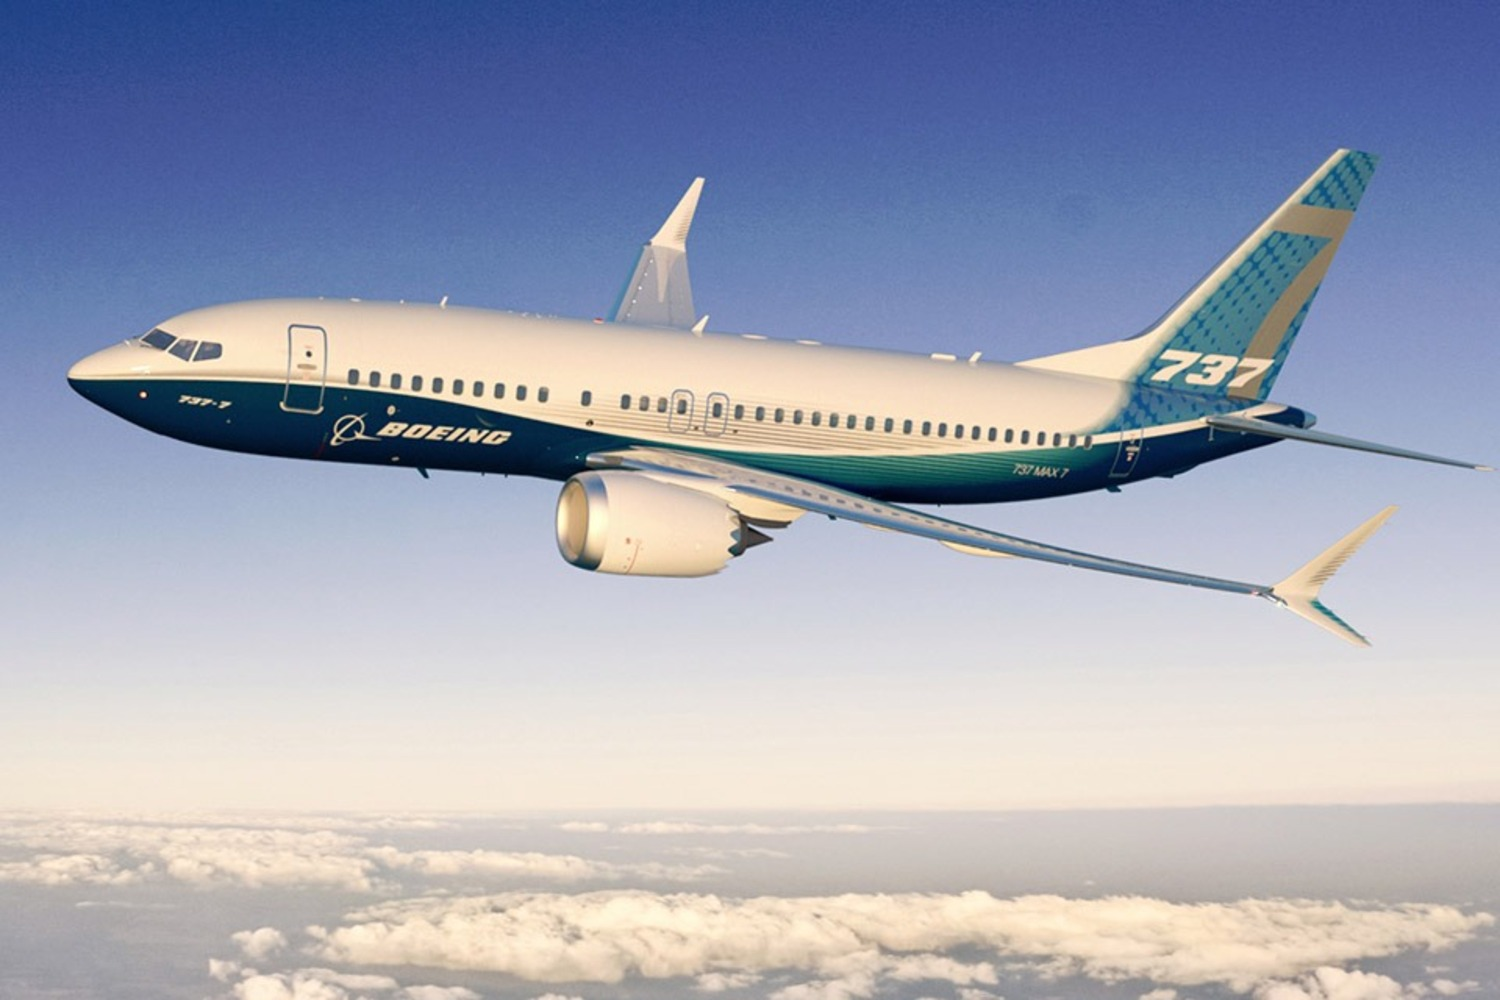 Boeing annuncia modifiche al software del 737 Max